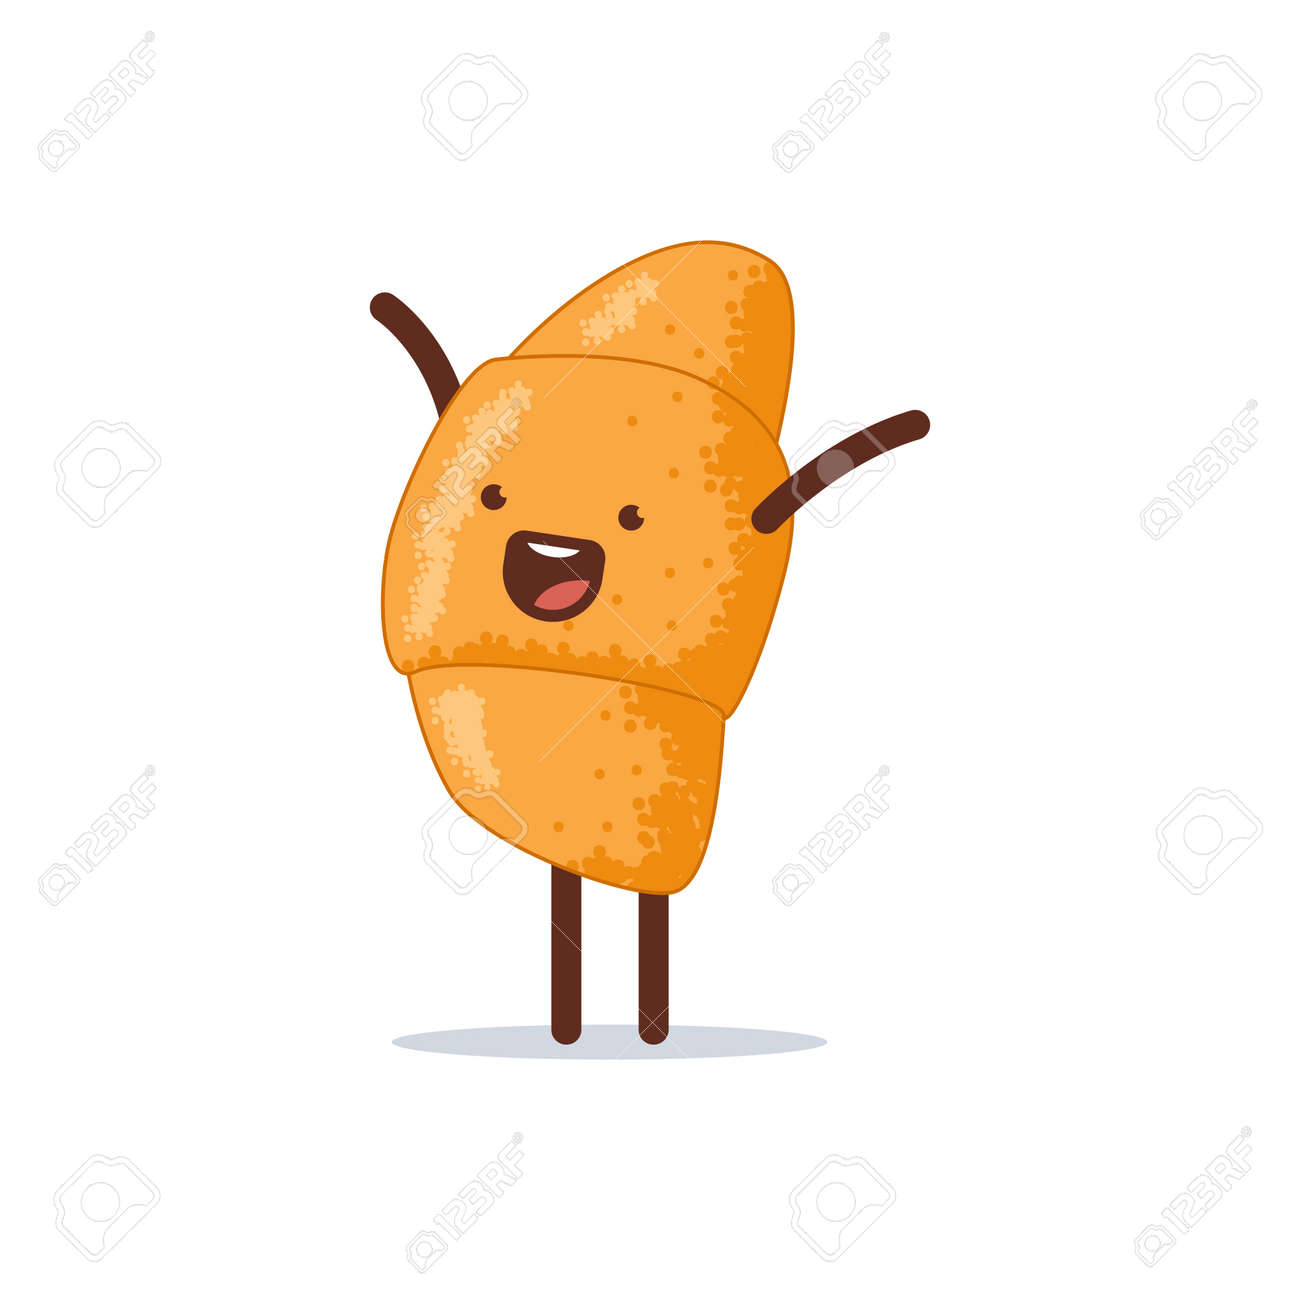 Cute and happy croissant vector cartoon character isolated on a white background. - 170643247